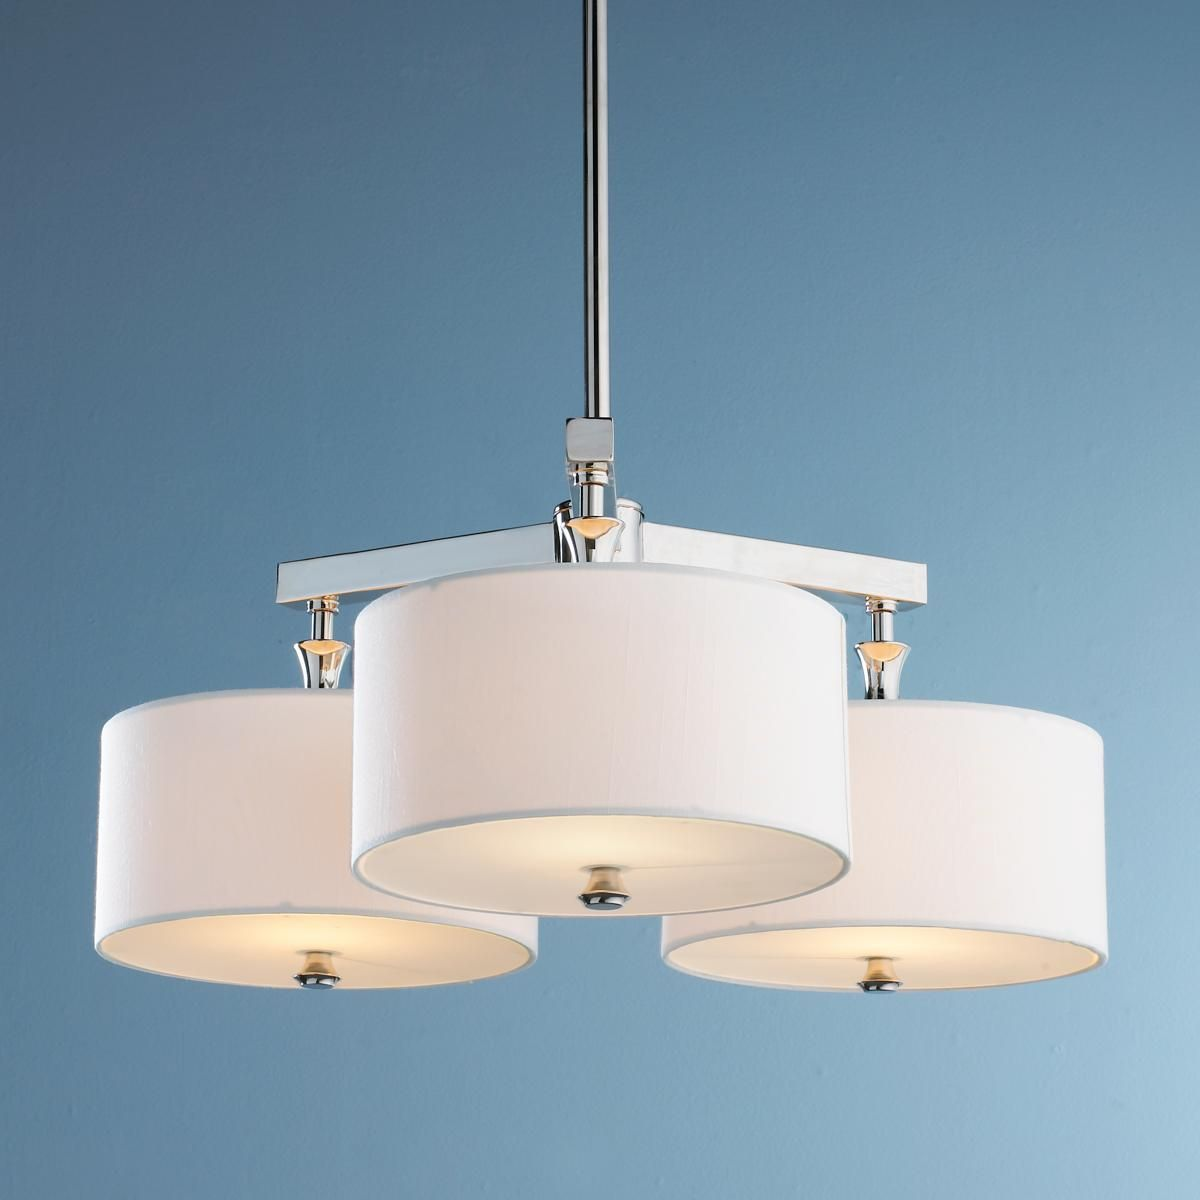 3 Light Drum Shade Chandelier with diffusers - from Shades of Light ...